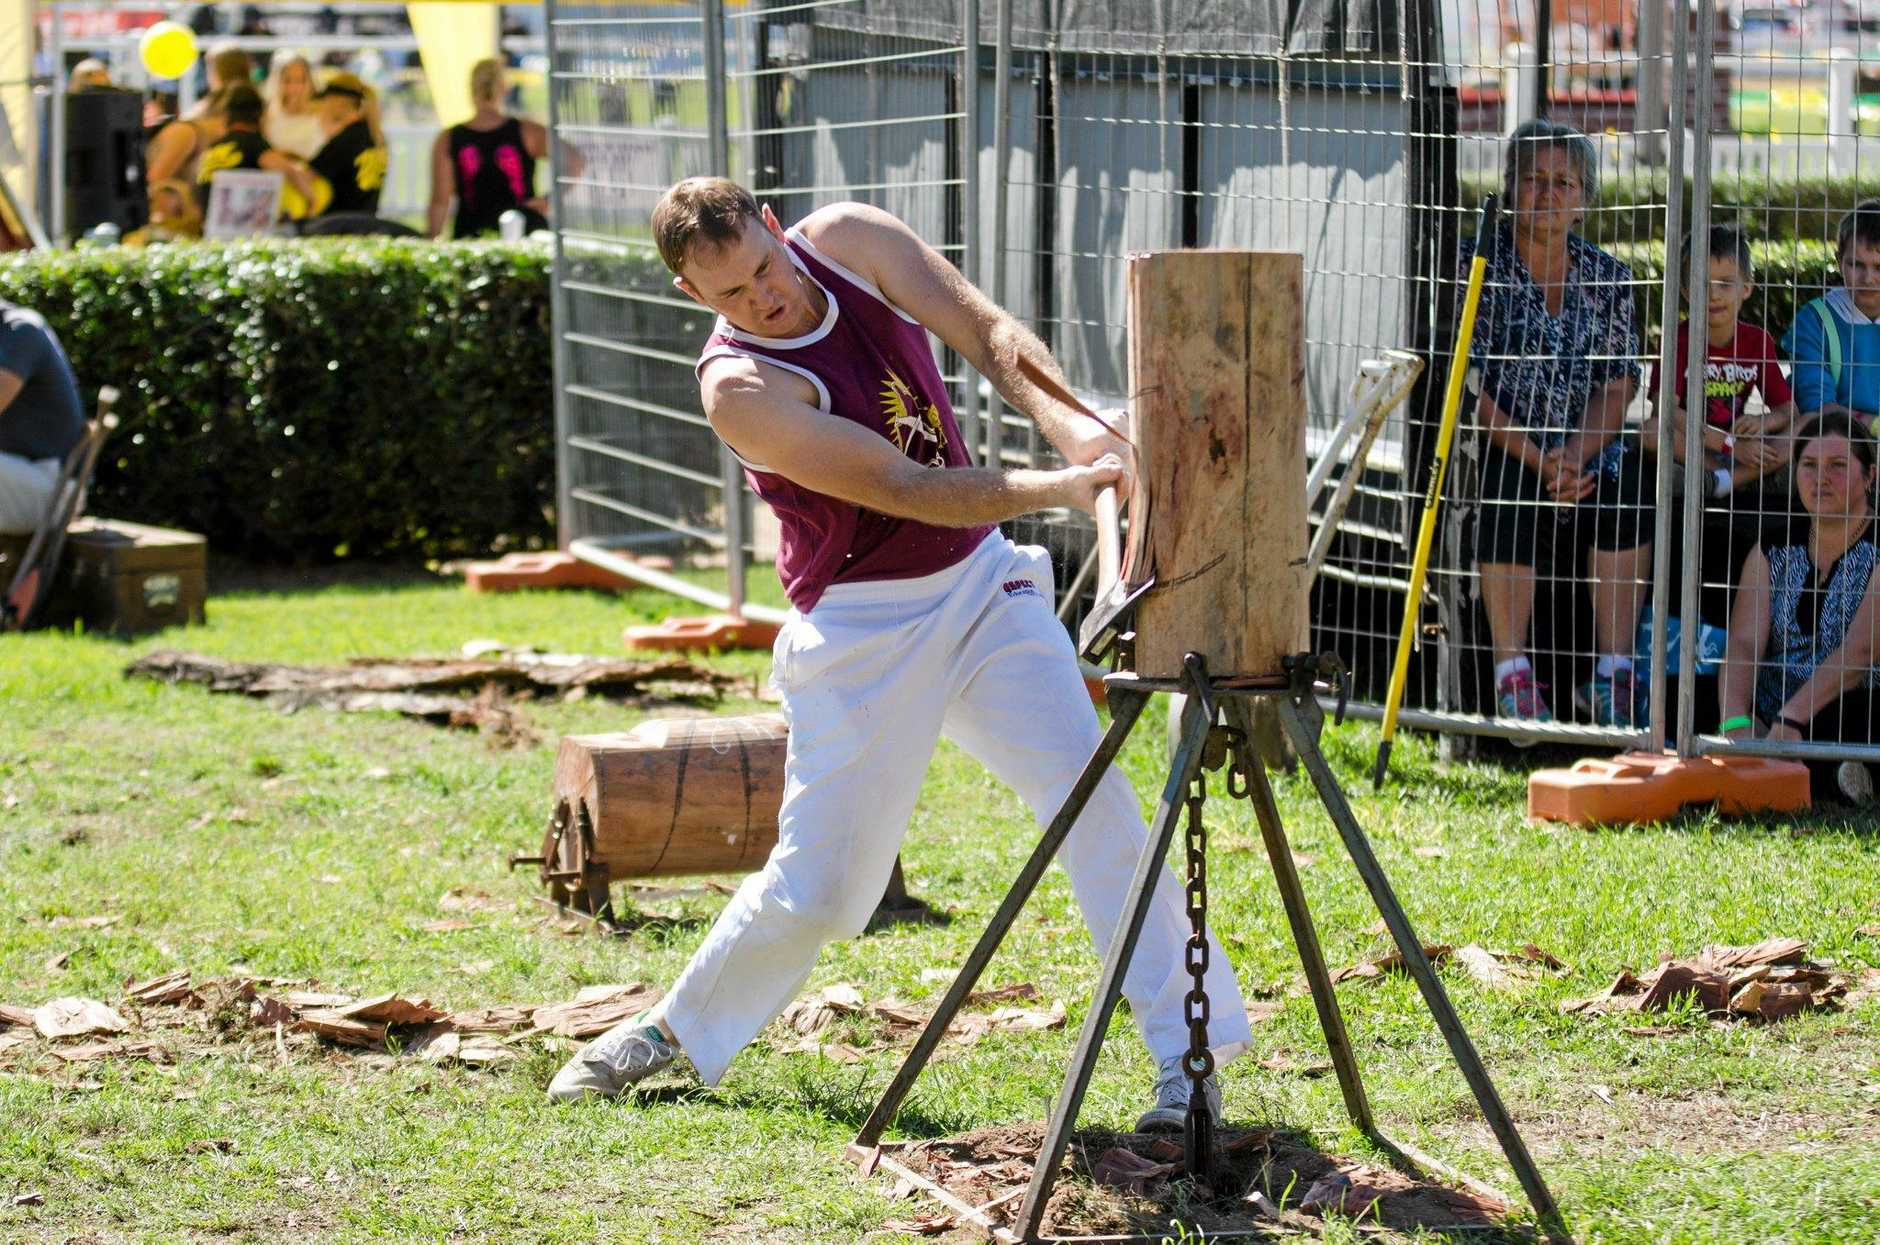 CHOP CHOP: Blake Draper cuts loose at the 2016 Gympie Show wood chop events.